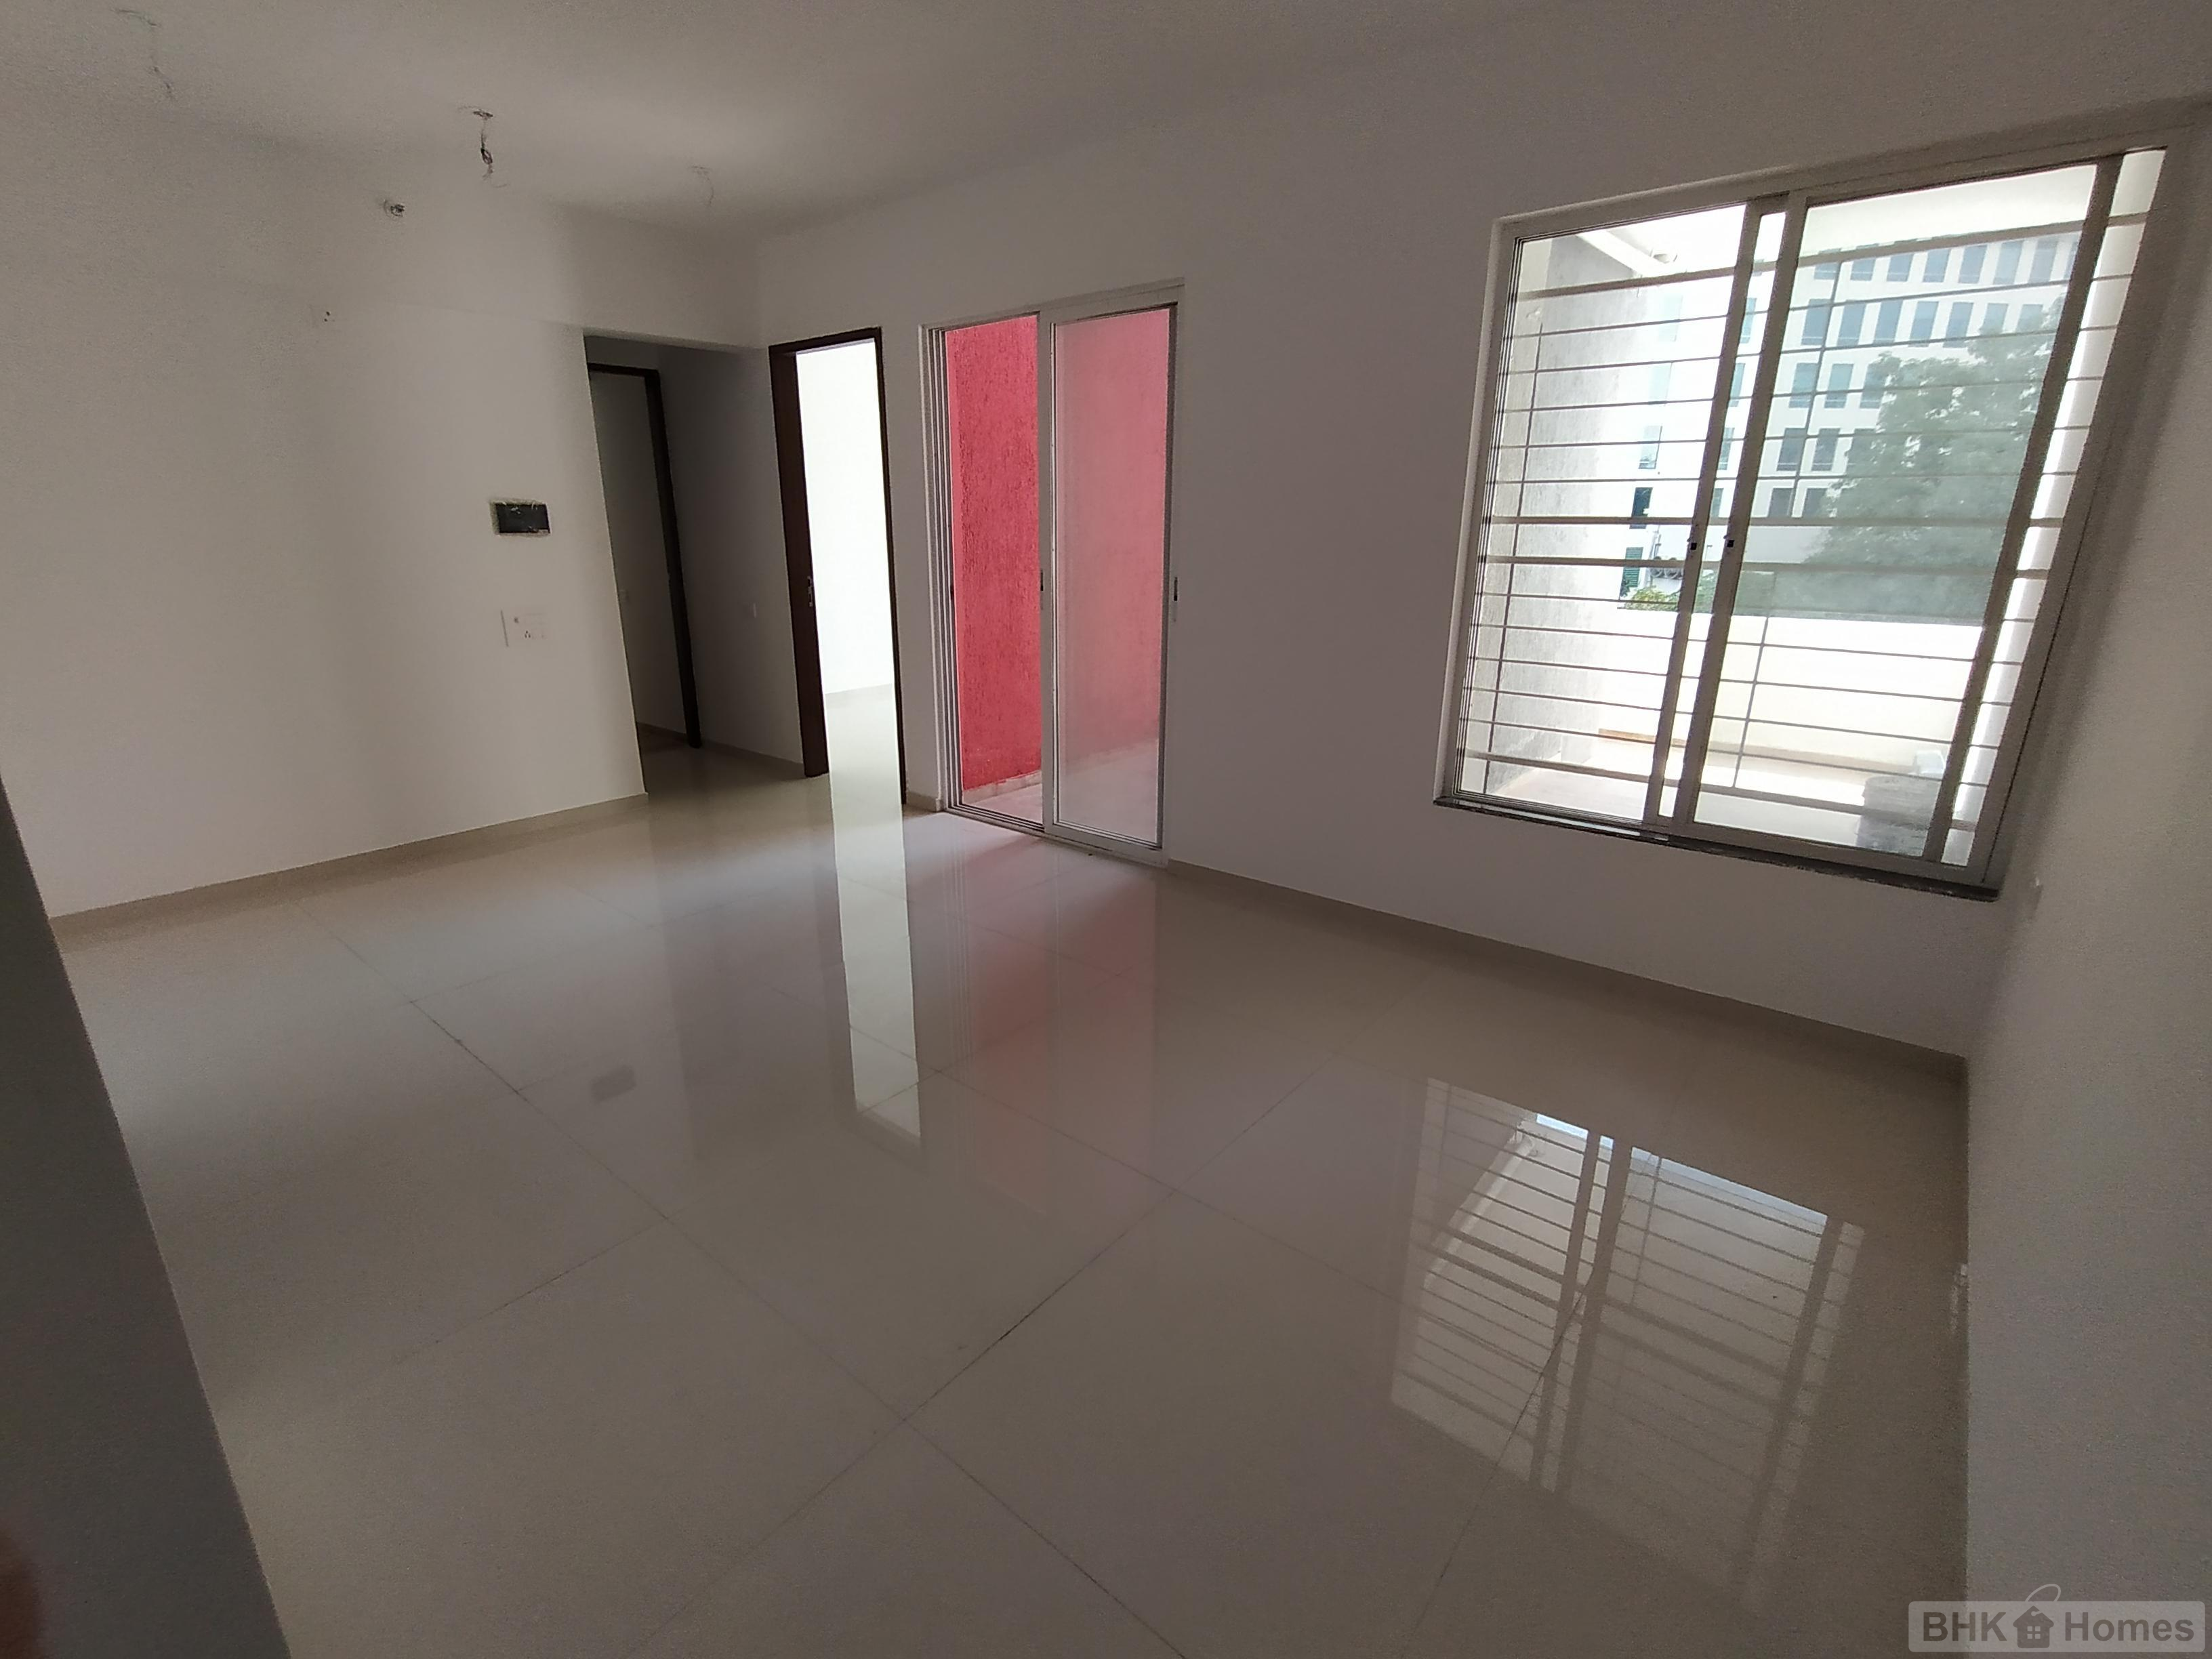 2 BHK Residential Apartment for Sale in Hinjewadi Phase 2